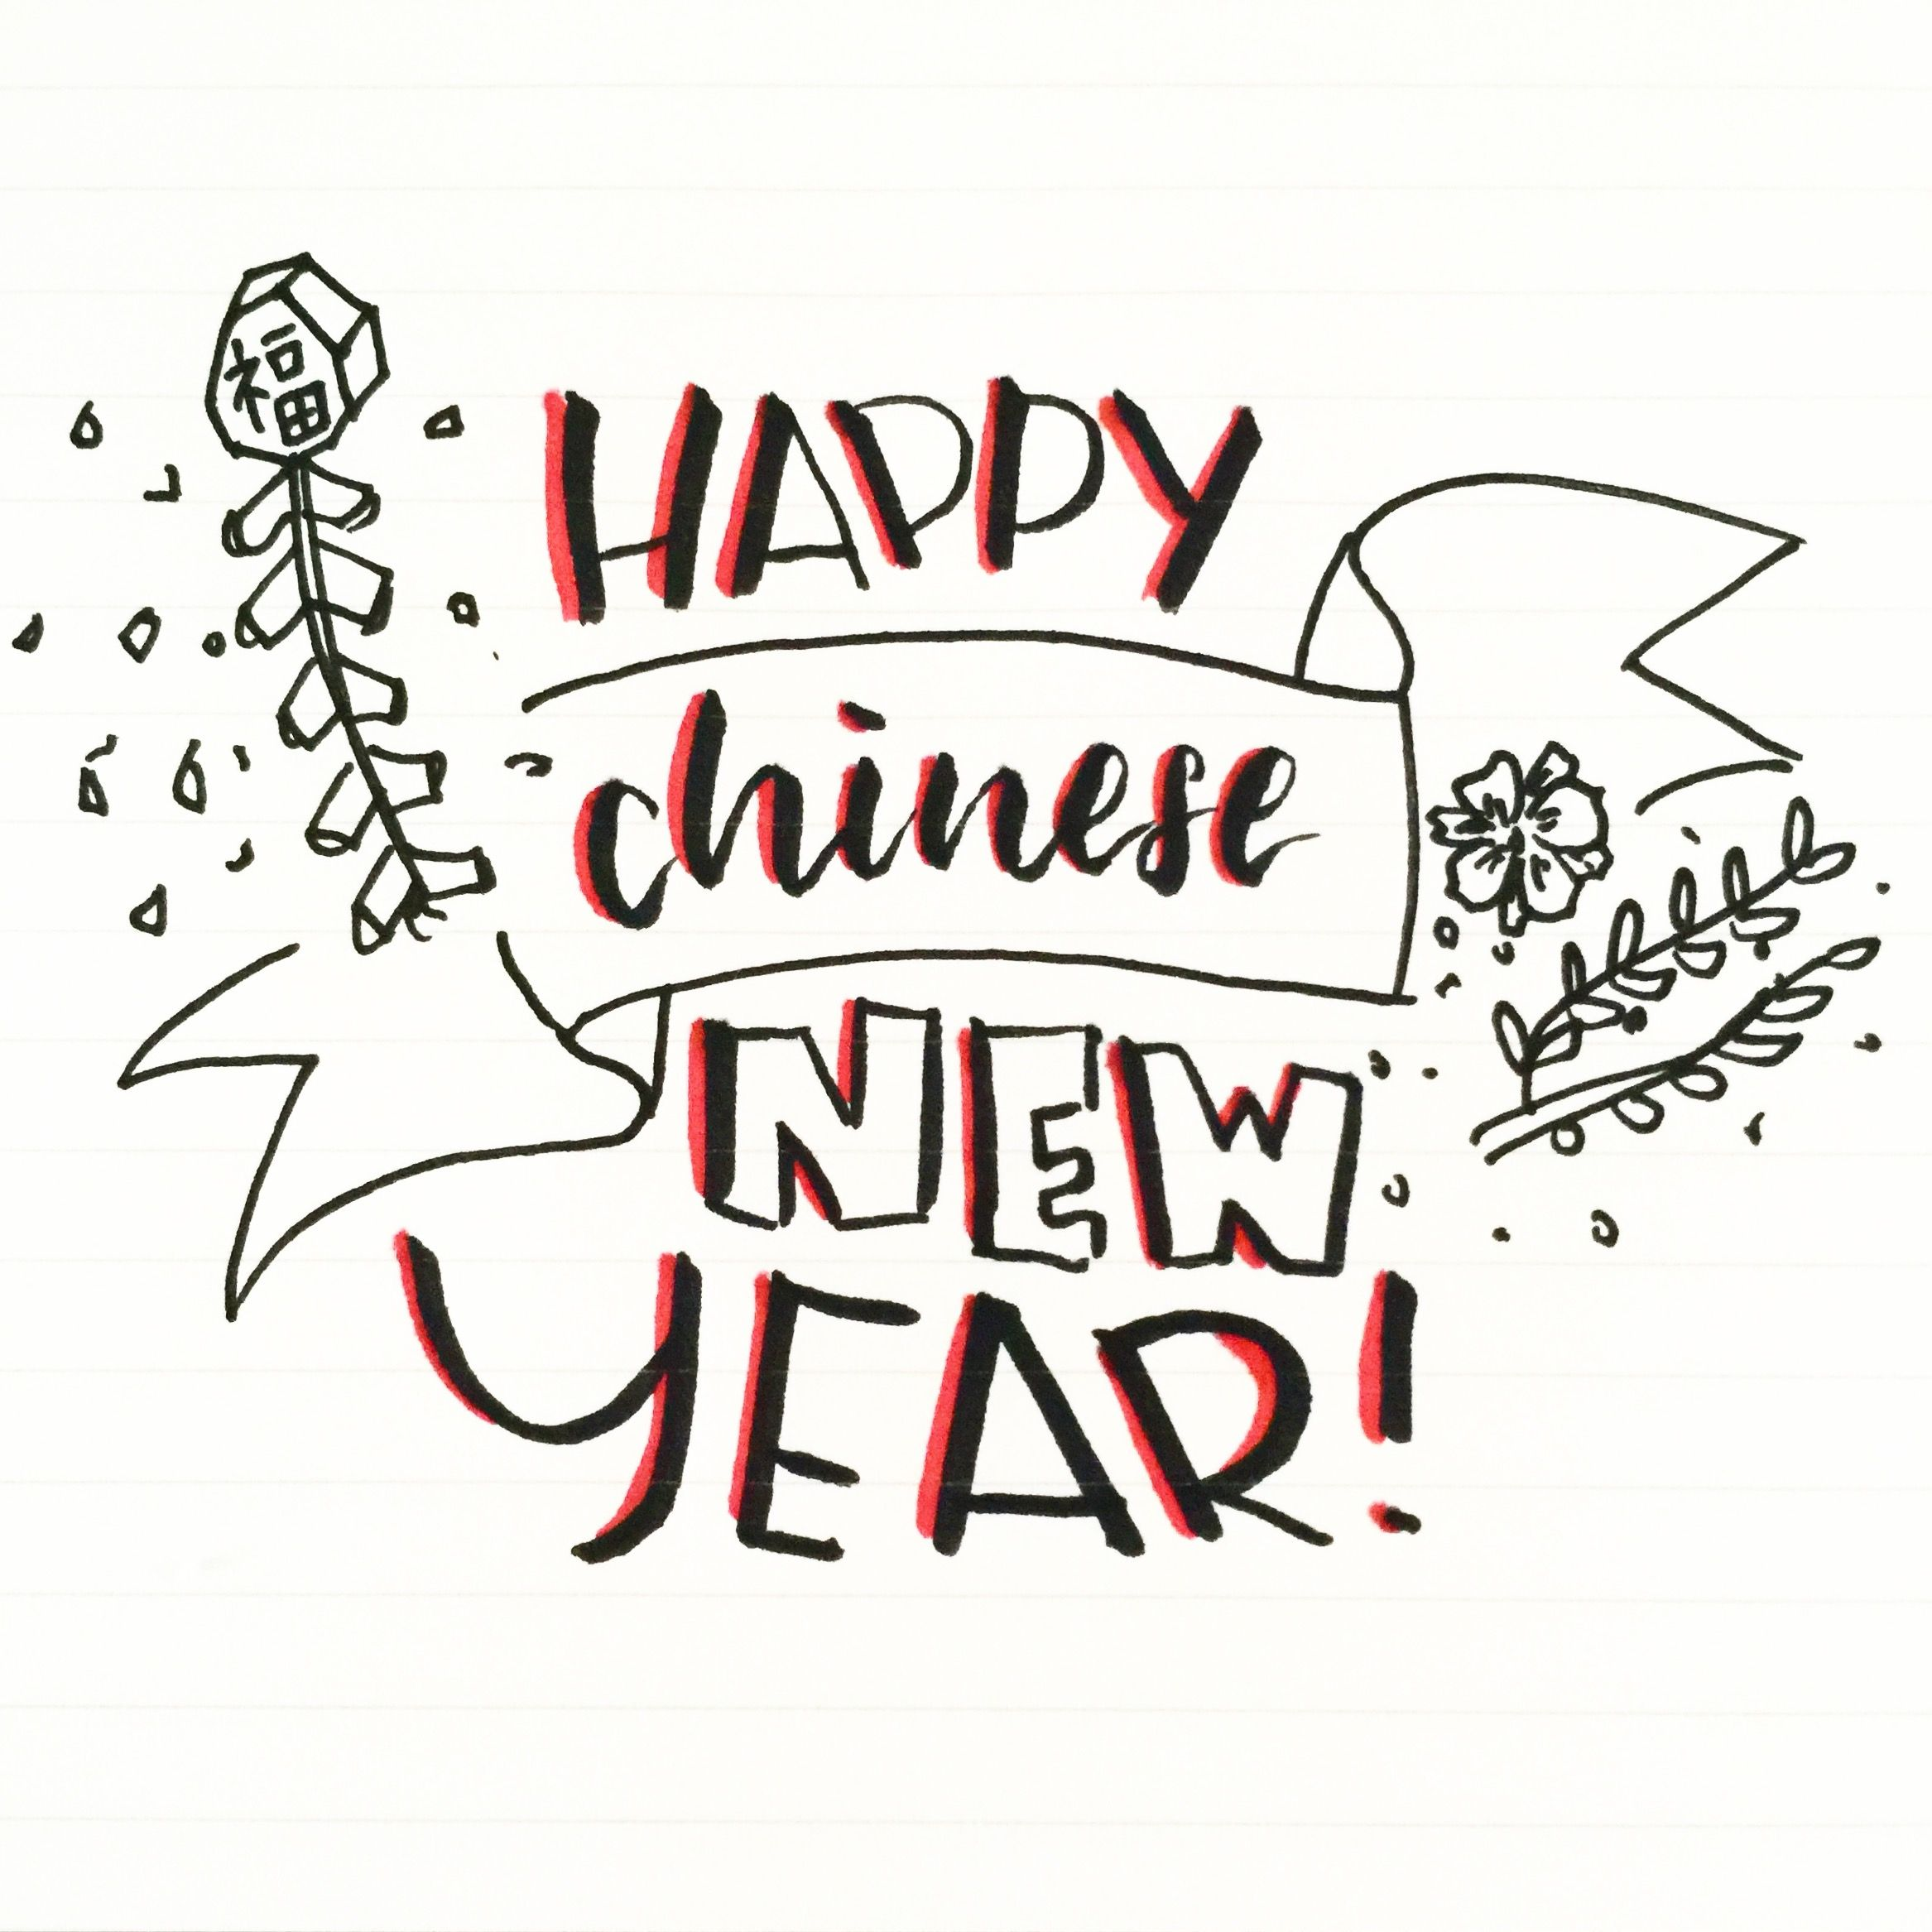 Happy Chinese New Year Instagram Callitender Calligraphy Lettering